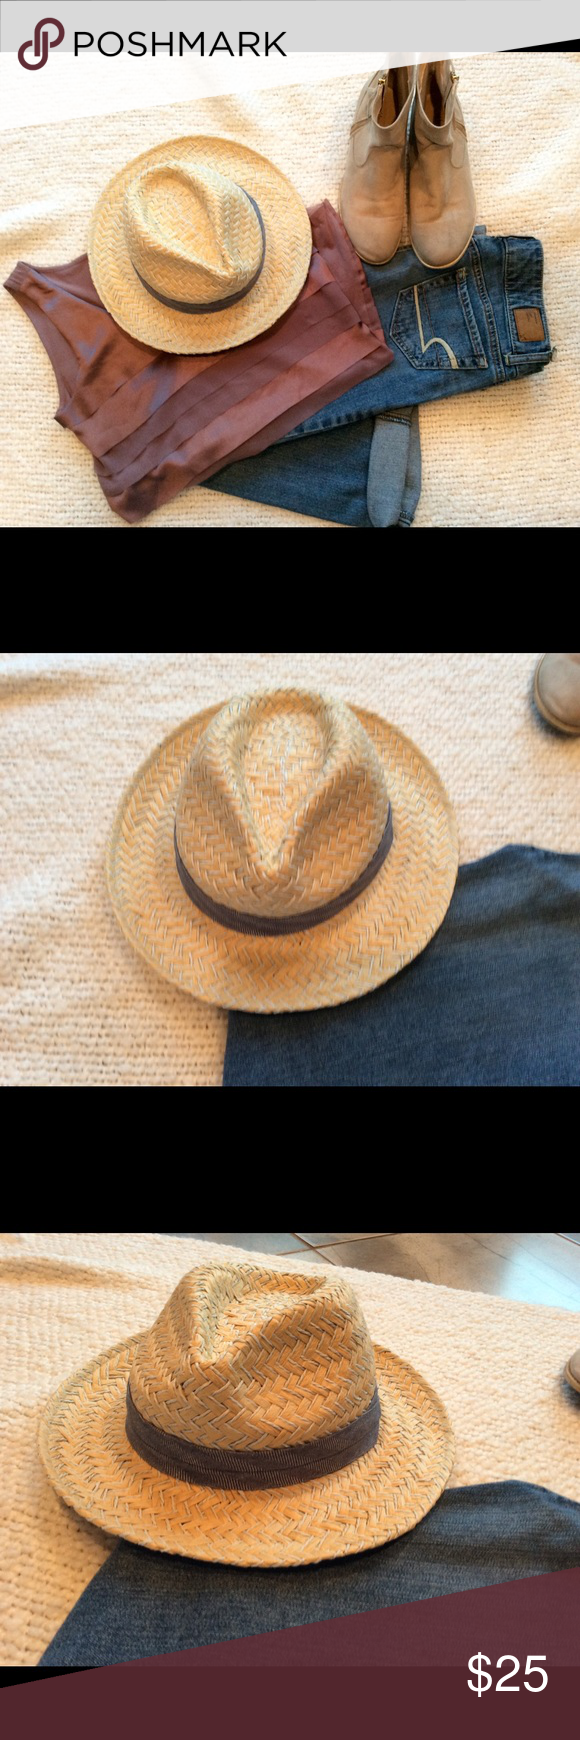 "Lucky brand Straw Hat Darling straw hat!  Goes great with jeans and booties or a floral dress and sandals!  Never worn!  Bought on sale at Lucky Store for my daughter but got a ""I don't wear hats, Mom!"" answer!  Ahaha!  Kids - gotta love 'me! ☺️ The boots and shirt are available, too!  Let me know if you want to see close-up pics! Lucky Brand Accessories Hats"